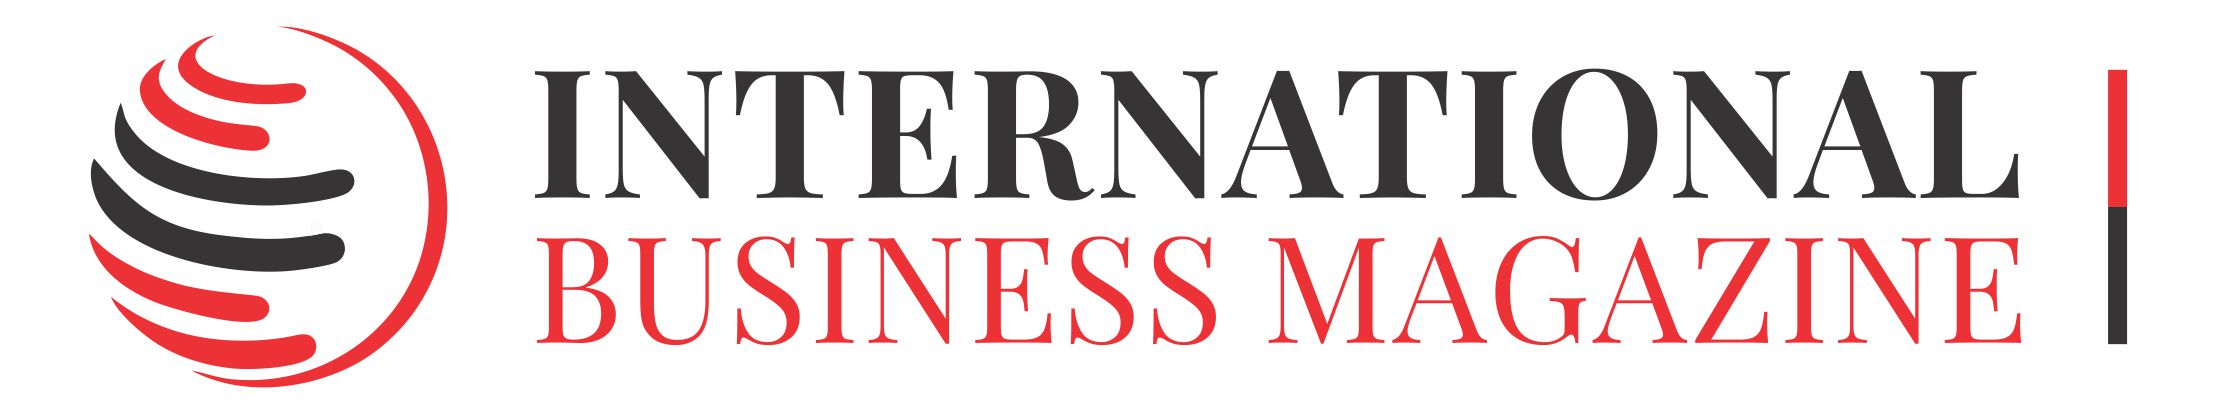 International Business Magazine image